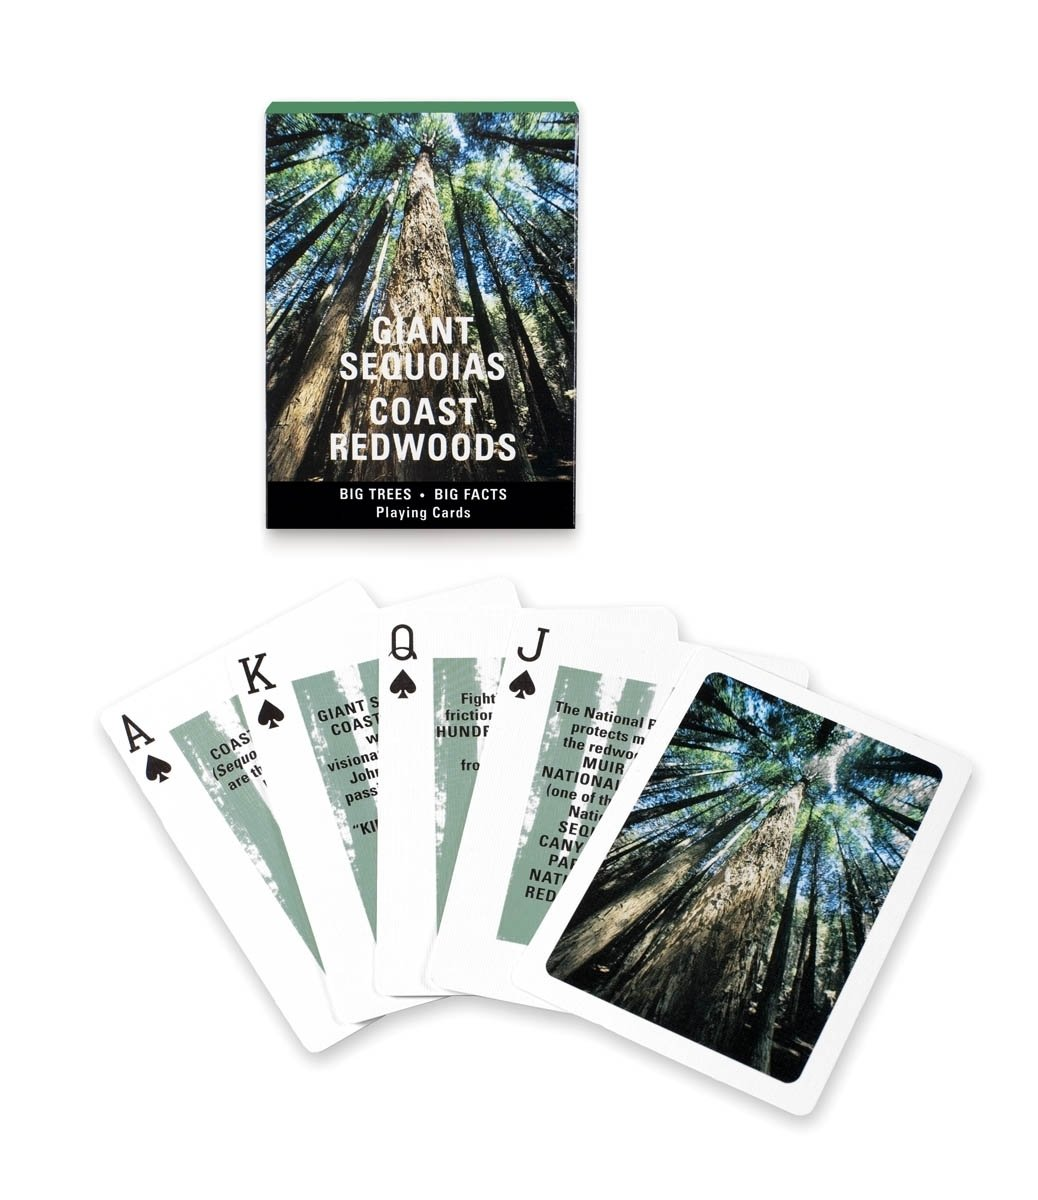 Giant Redwoods Playing Cards from the Golden Gate National Parks Conservancy, $5.95  Photo 4 of 7 in The 5 Outdoorsy Gifts That Every Modern Camper Needs